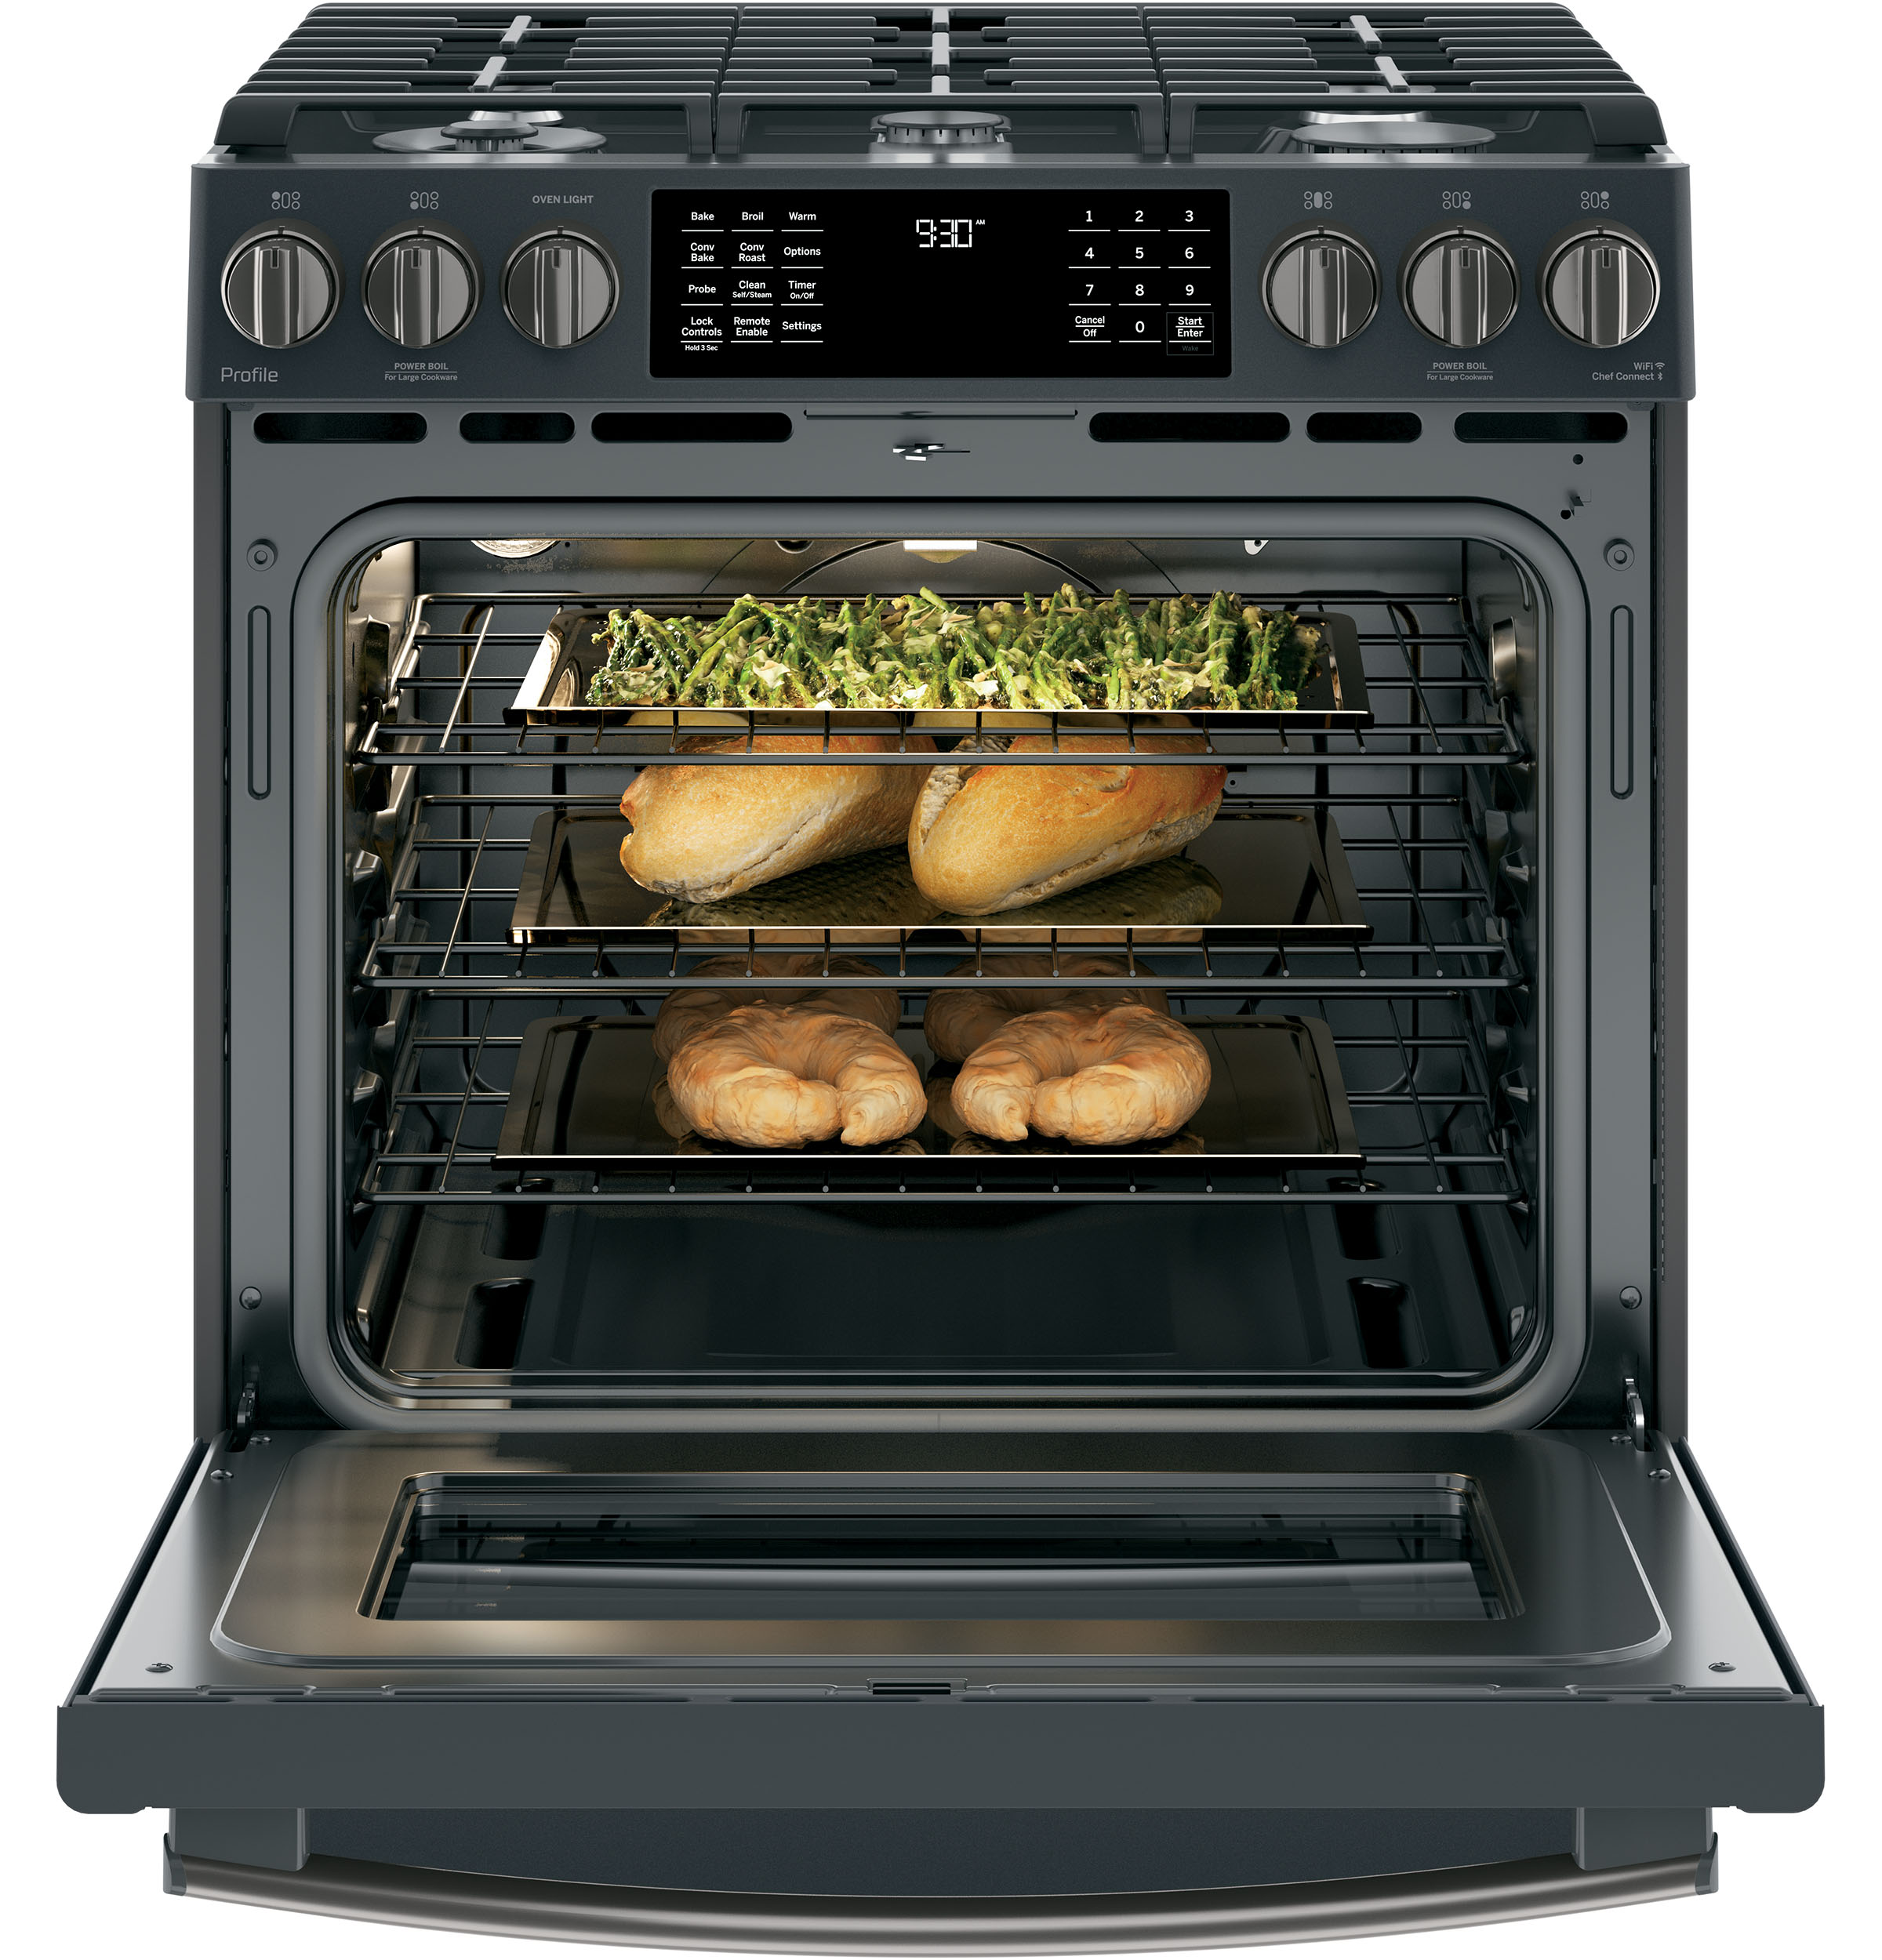 "Model: PGS930FELDS | GE Profile GE Profile™ Series 30"" Slide-In Front Control Gas Range"